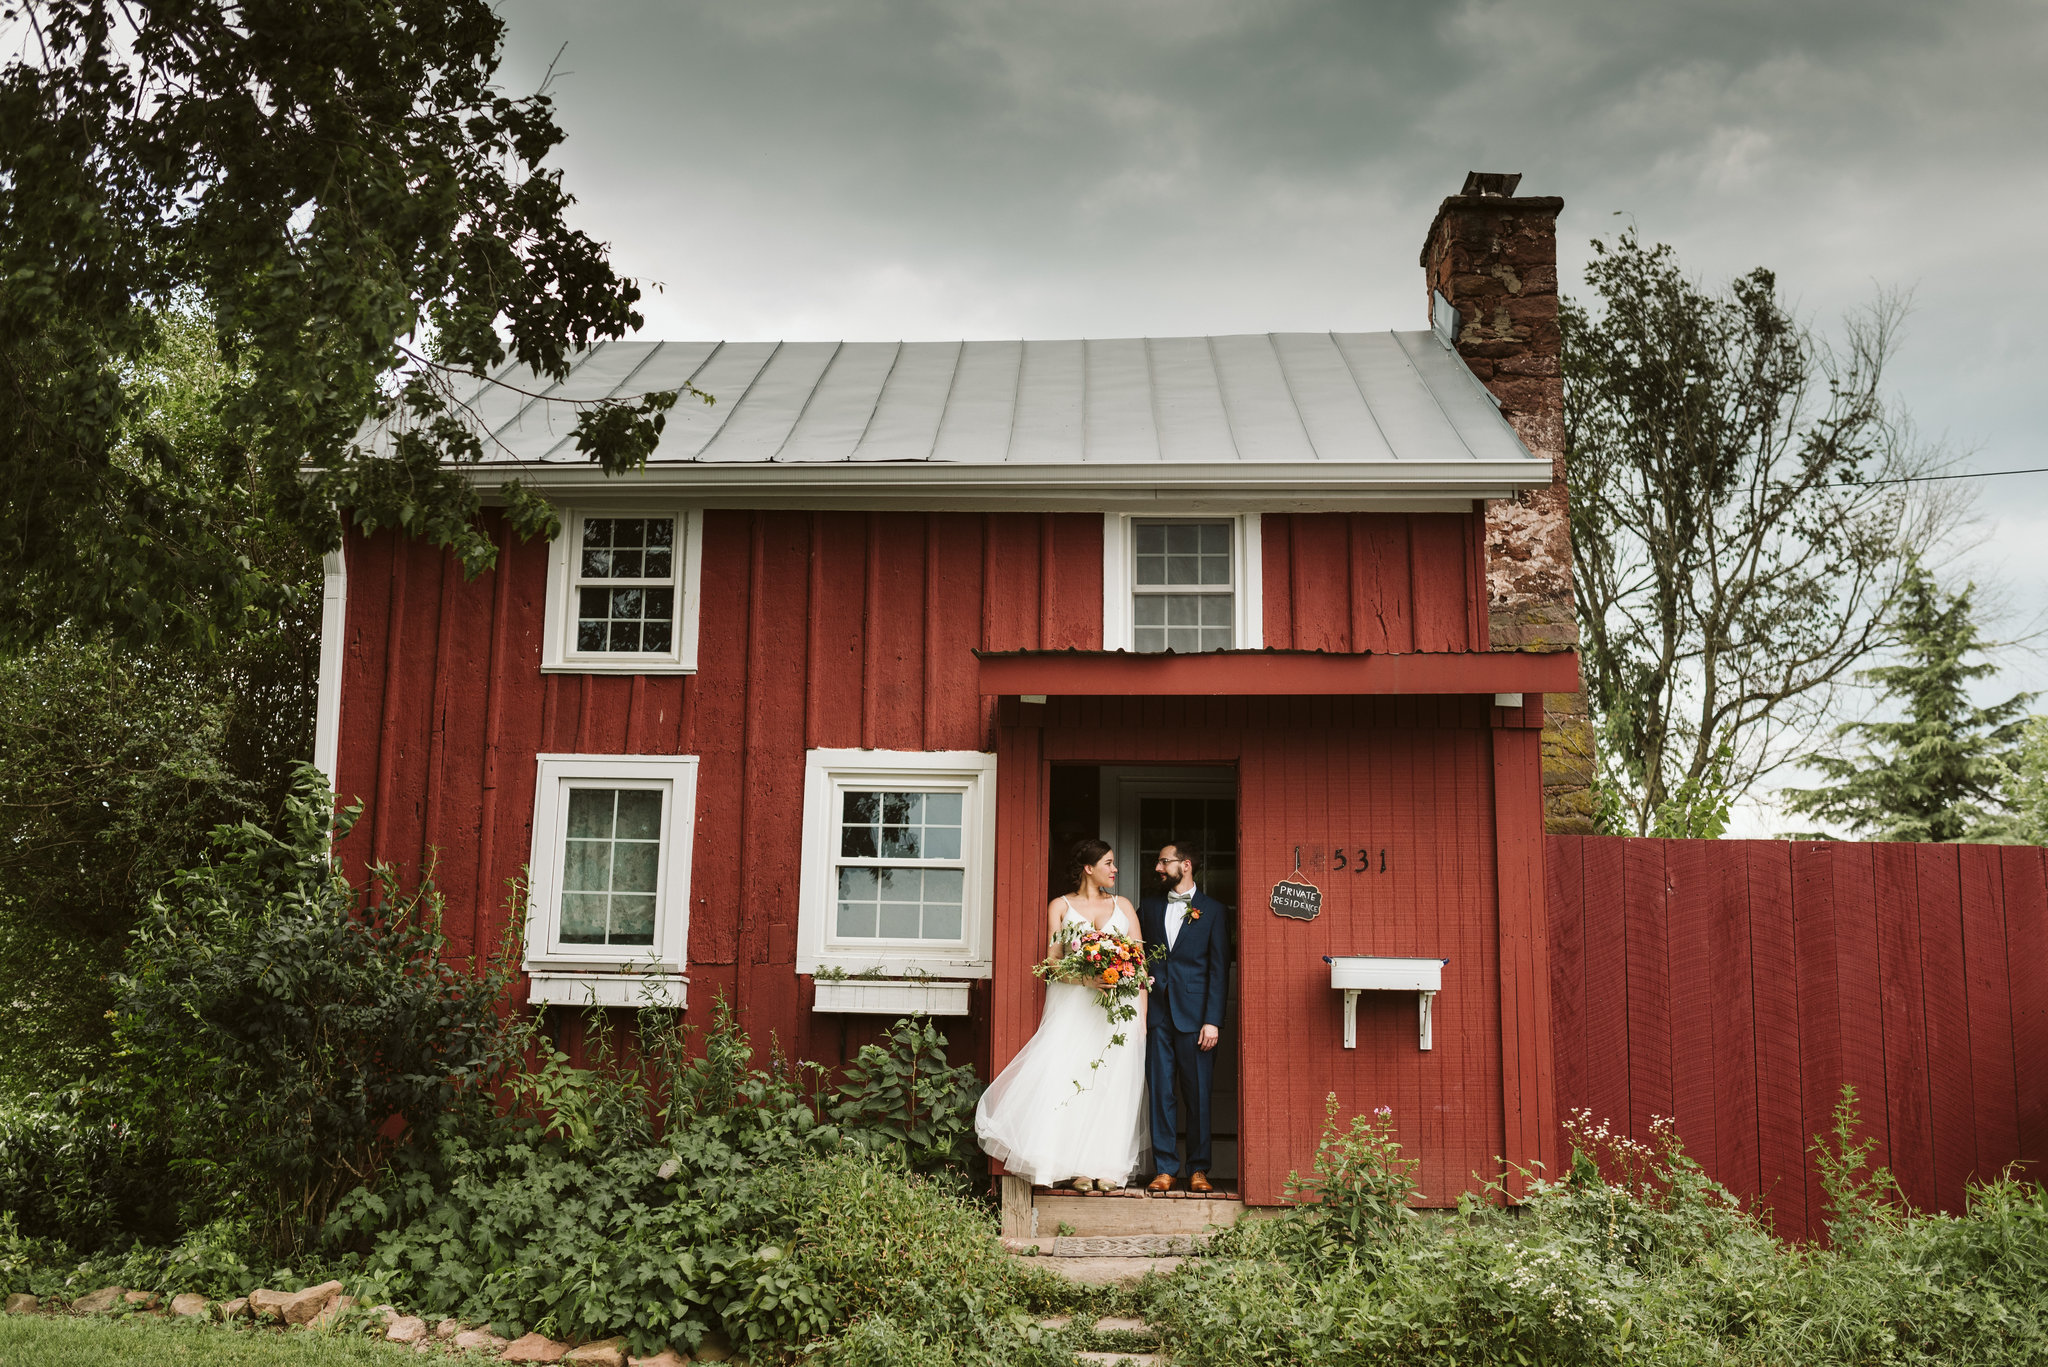 Rocklands Farm, Maryland, Intimate Wedding, Baltimore Wedding Photographer, Sungold Flower Co, Rustic, Romantic, Barn Wedding, Bride and Groom Standing in Doorway of Farmhouse